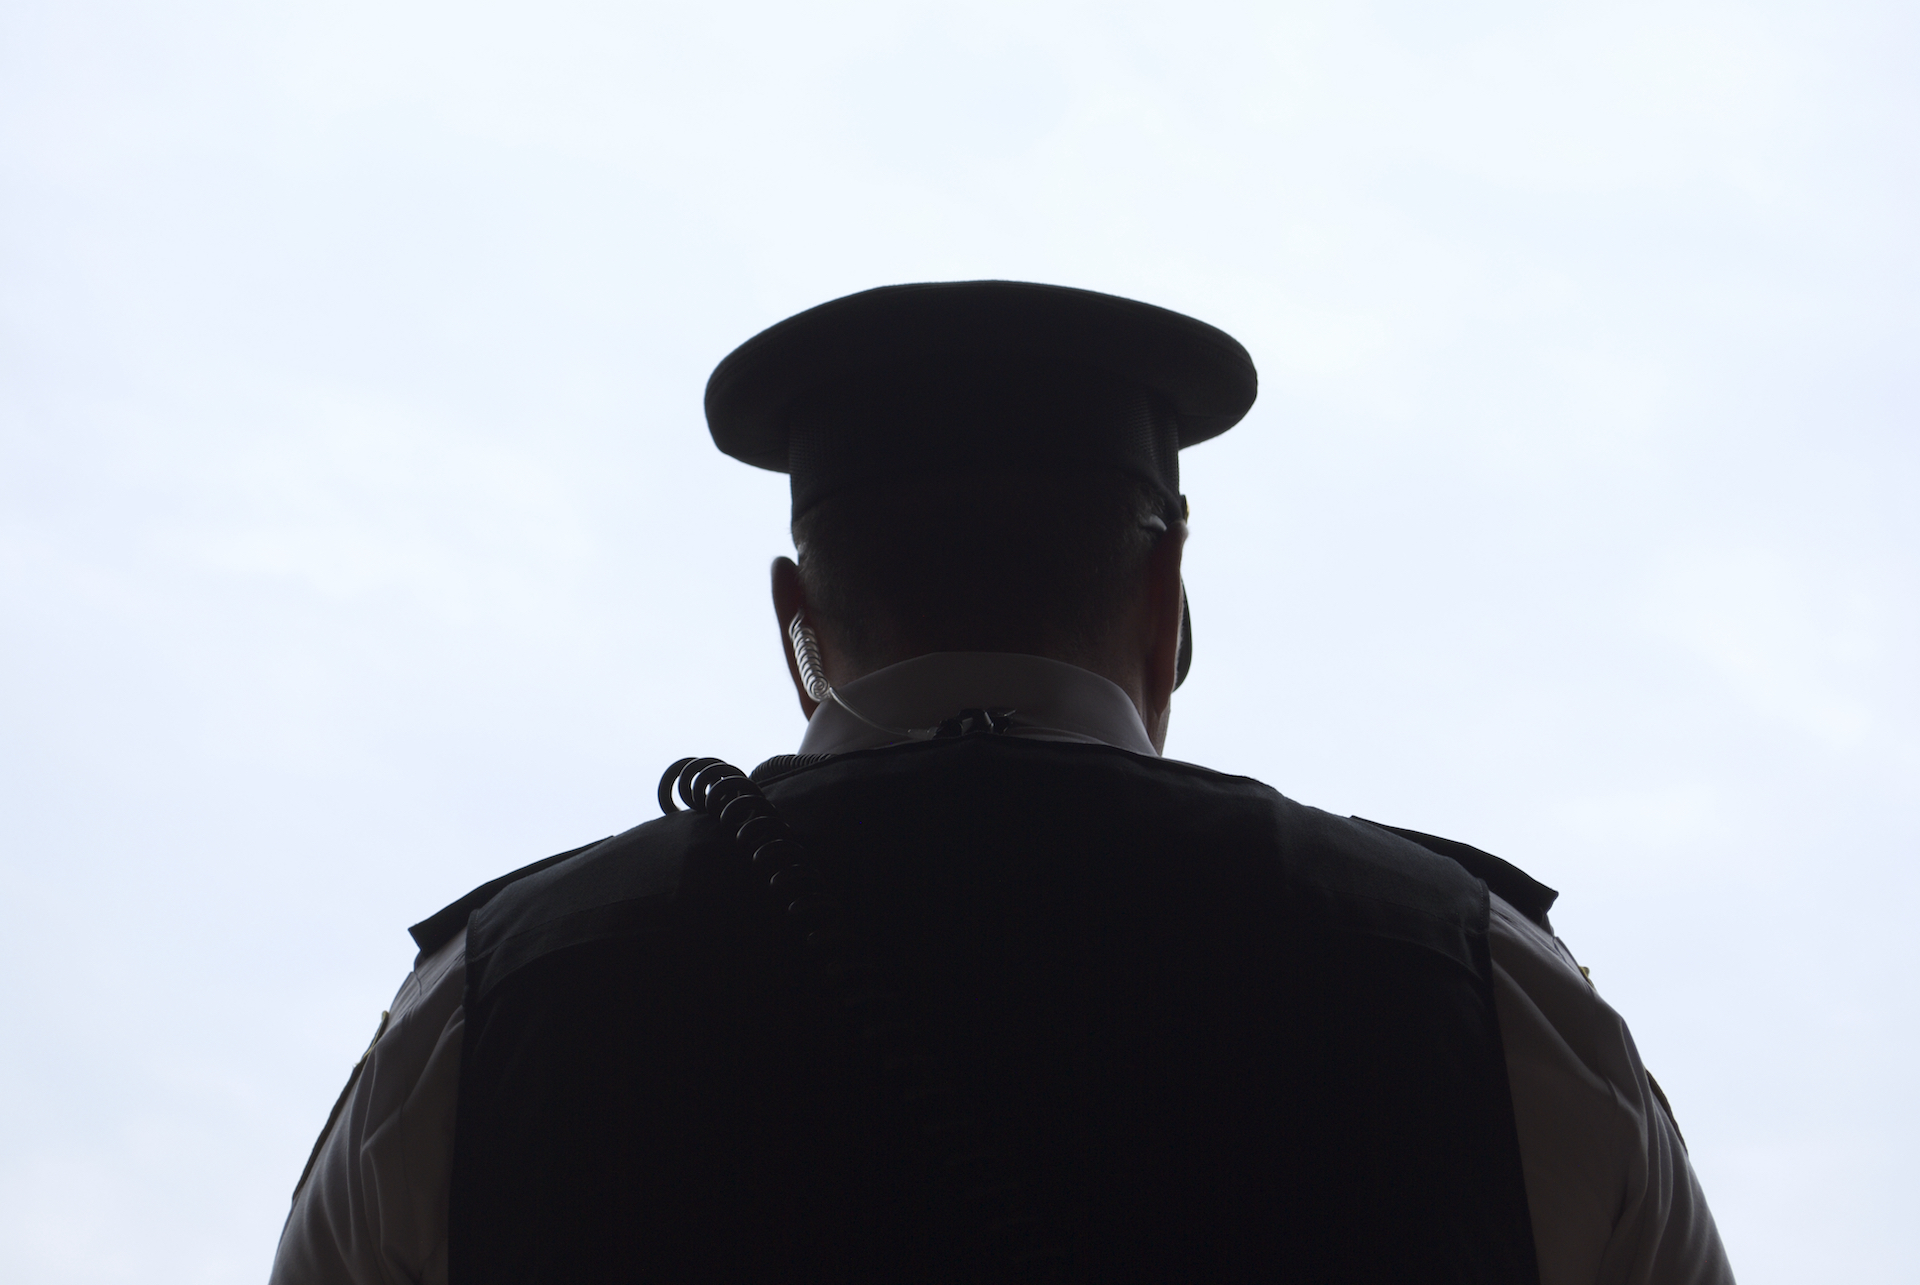 The agency that certifies people to become law enforcers in Utah handed down discipline to 19 current and former officers.